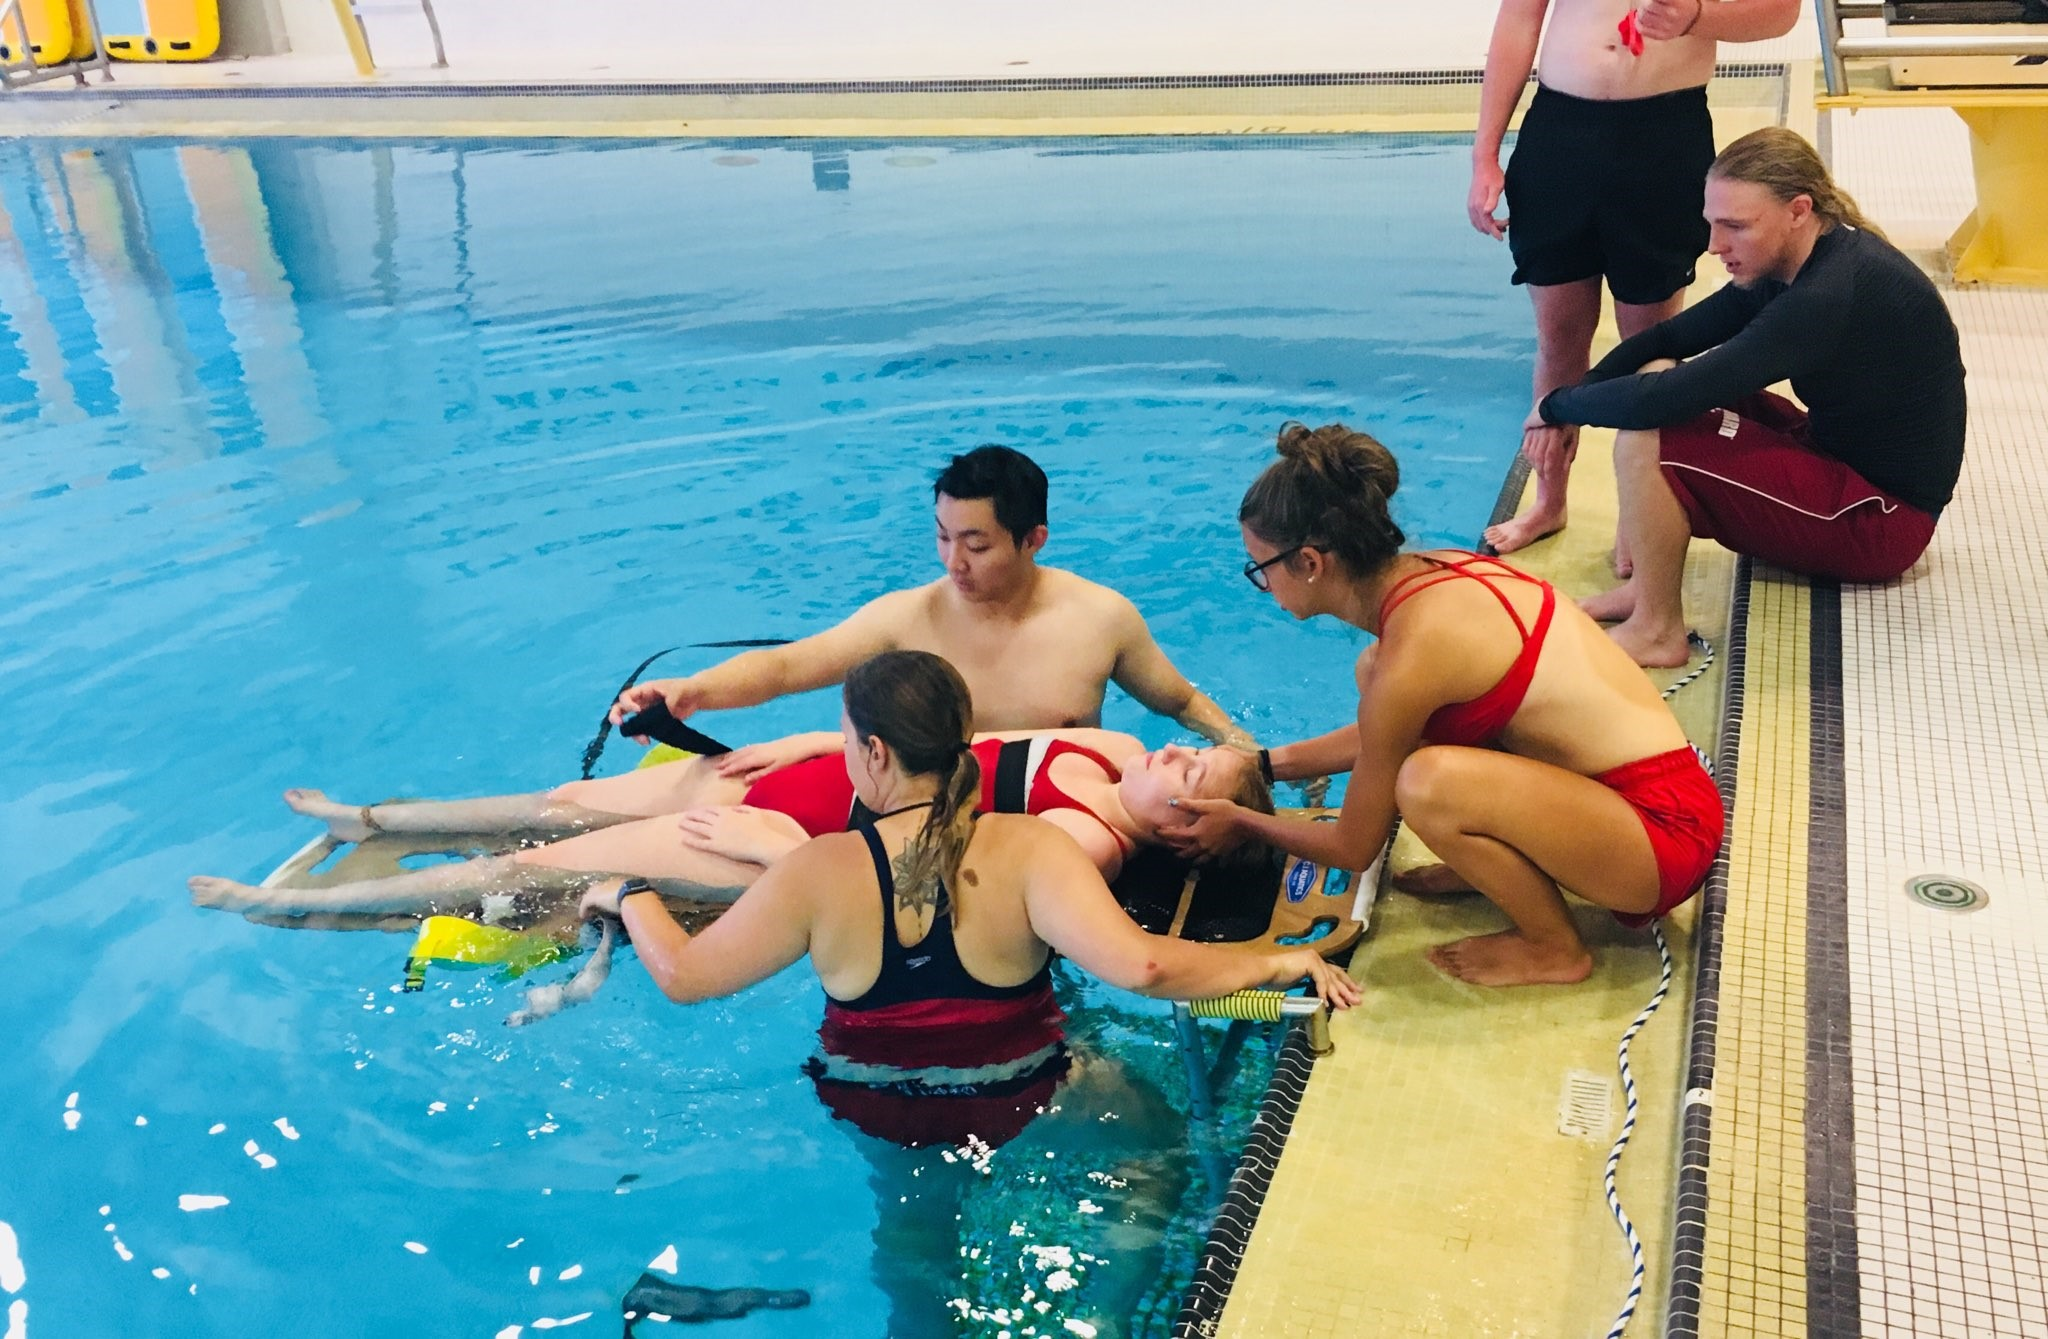 Lifeguards performing practice pool rescue